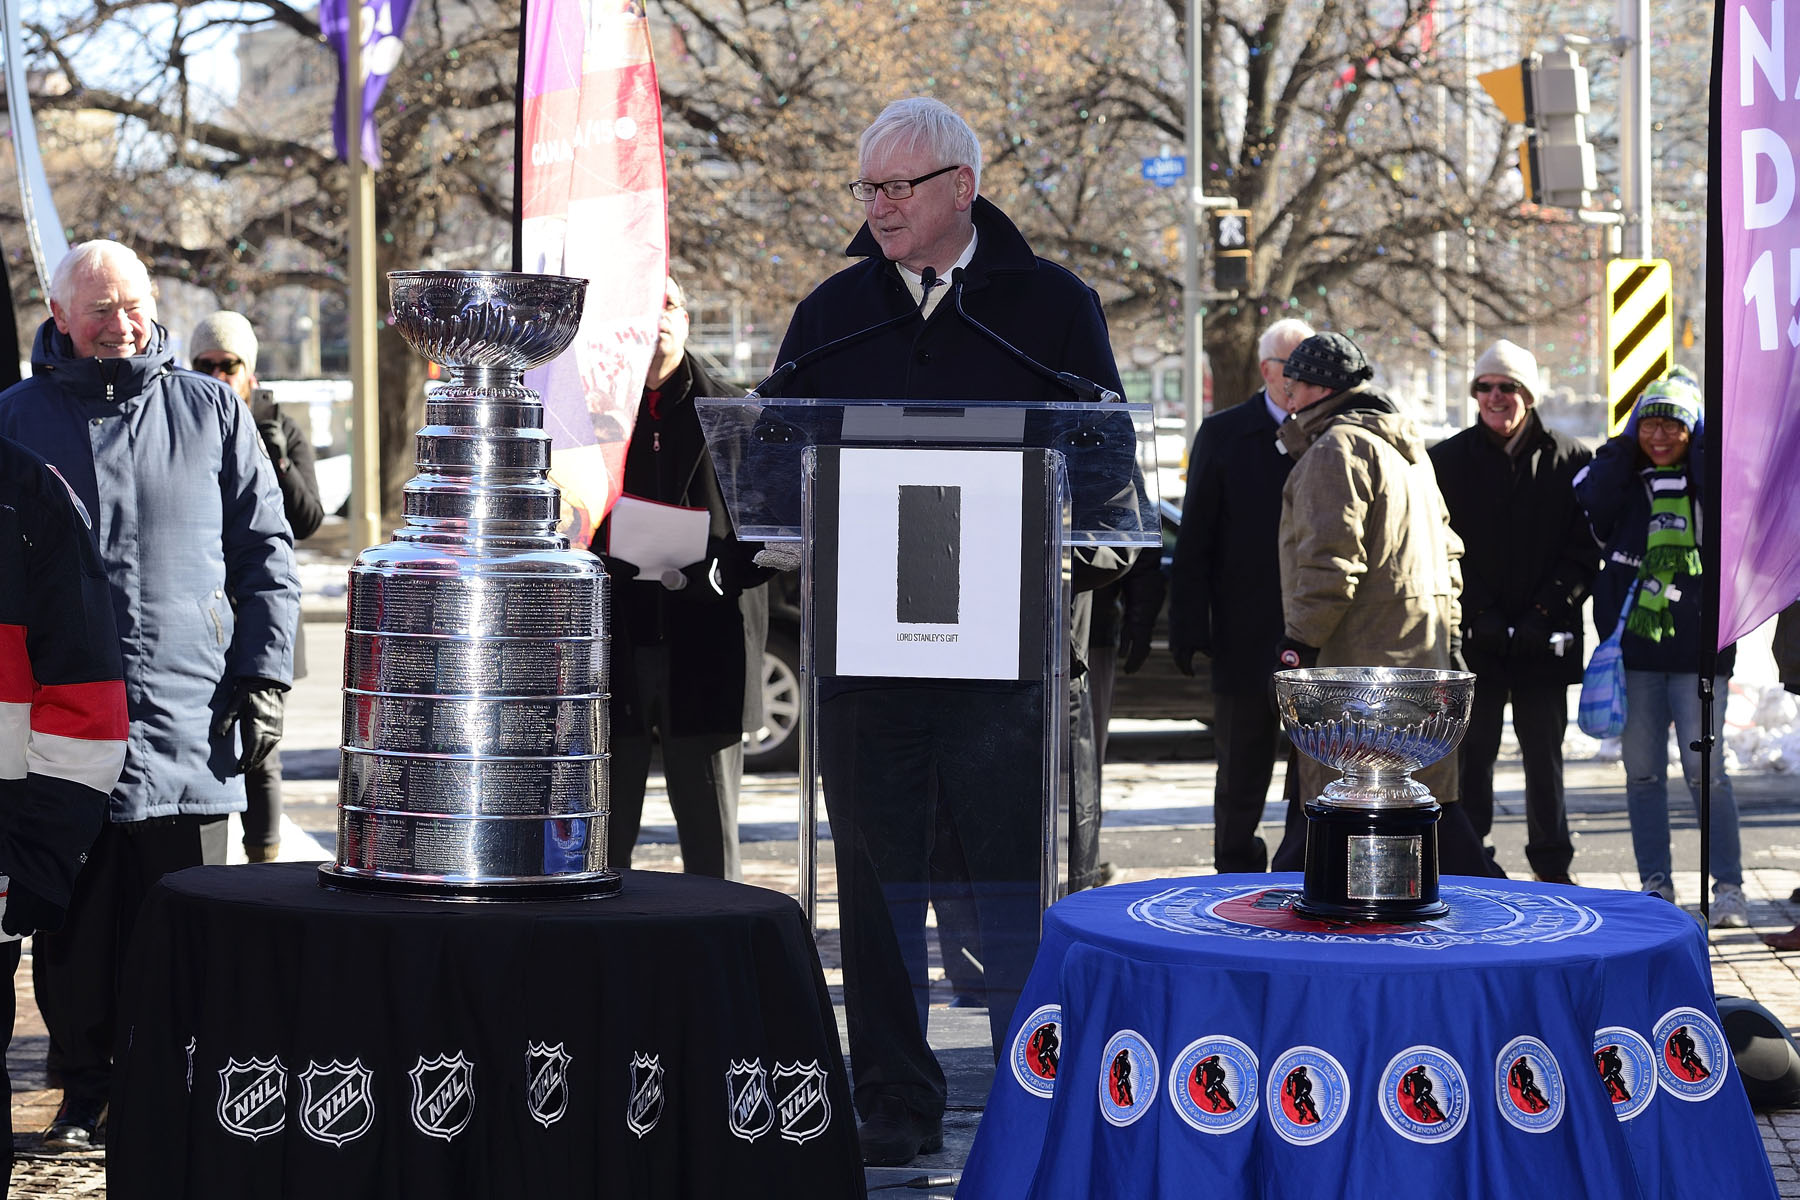 Mr. George Hunter, President of the Lord Stanley Memorial Monument Inc. (LSMMI), also said a few words. LSMMI is a Canadian non-profit charitable organization established by a group of private citizens with the objective of creating a monument to celebrate Lord Stanley's gift to the sport of ice hockey: the Stanley Cup.